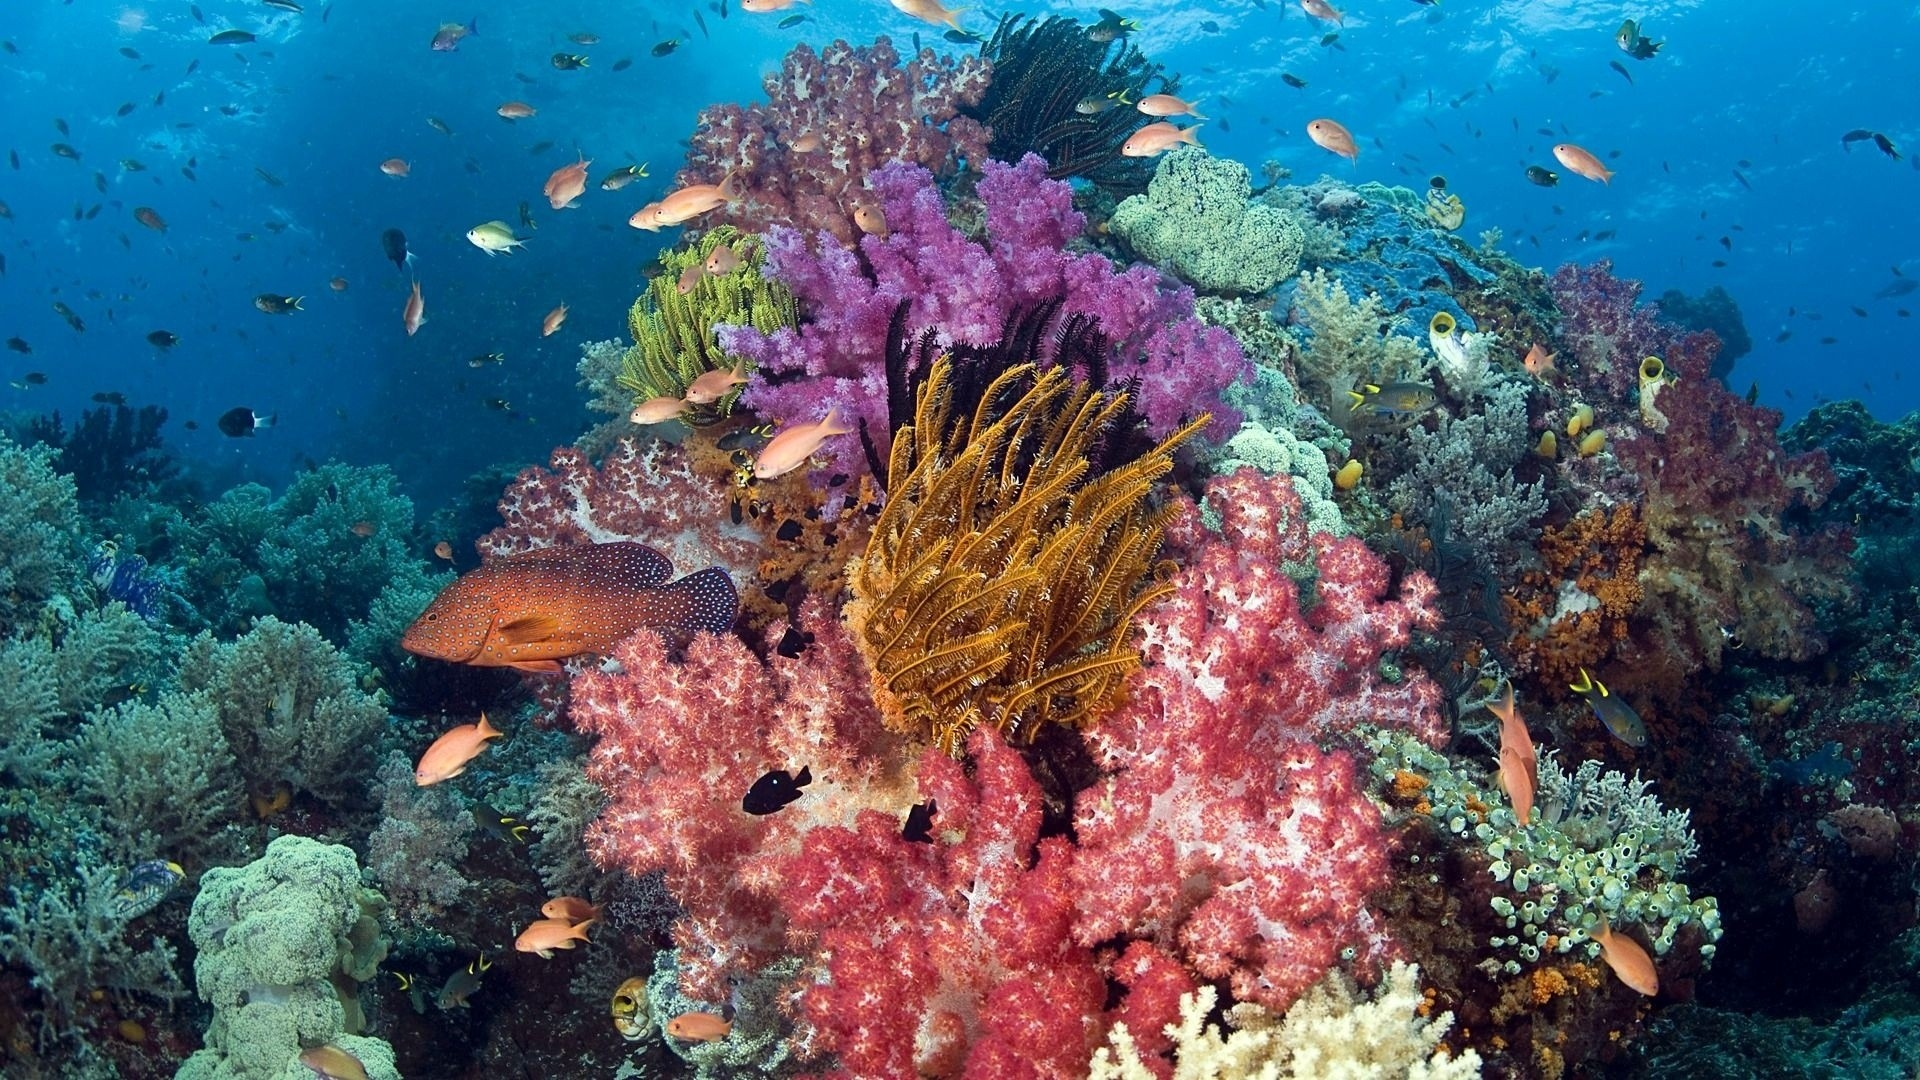 Coral Reef Wallpaper Picture hd